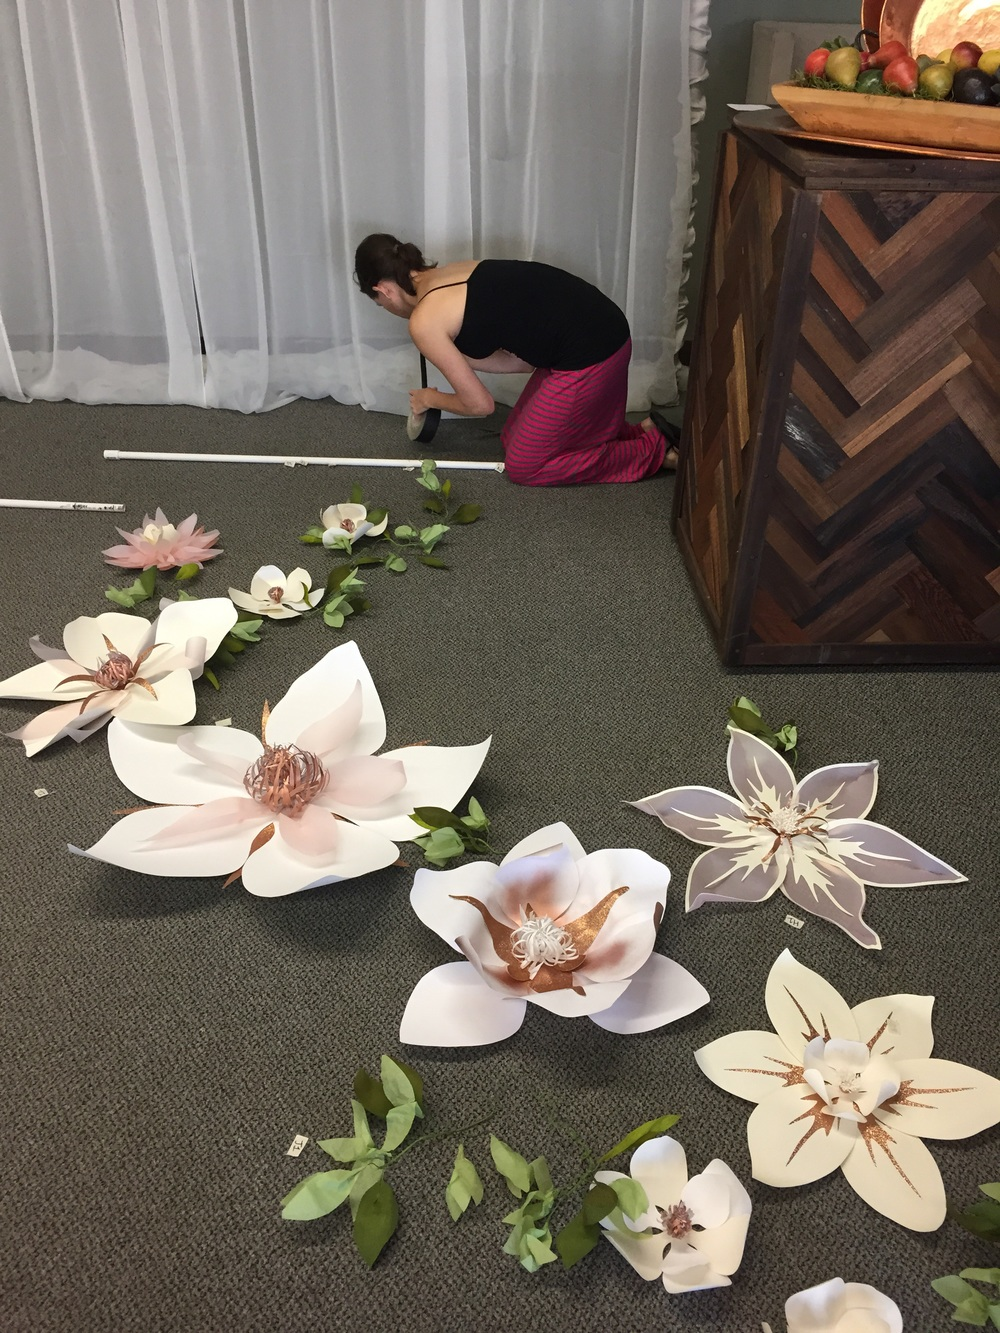 The amazing Carolyn Wilson being an amazing assistant down on her hands and knees helping me mount the flower backdrop.